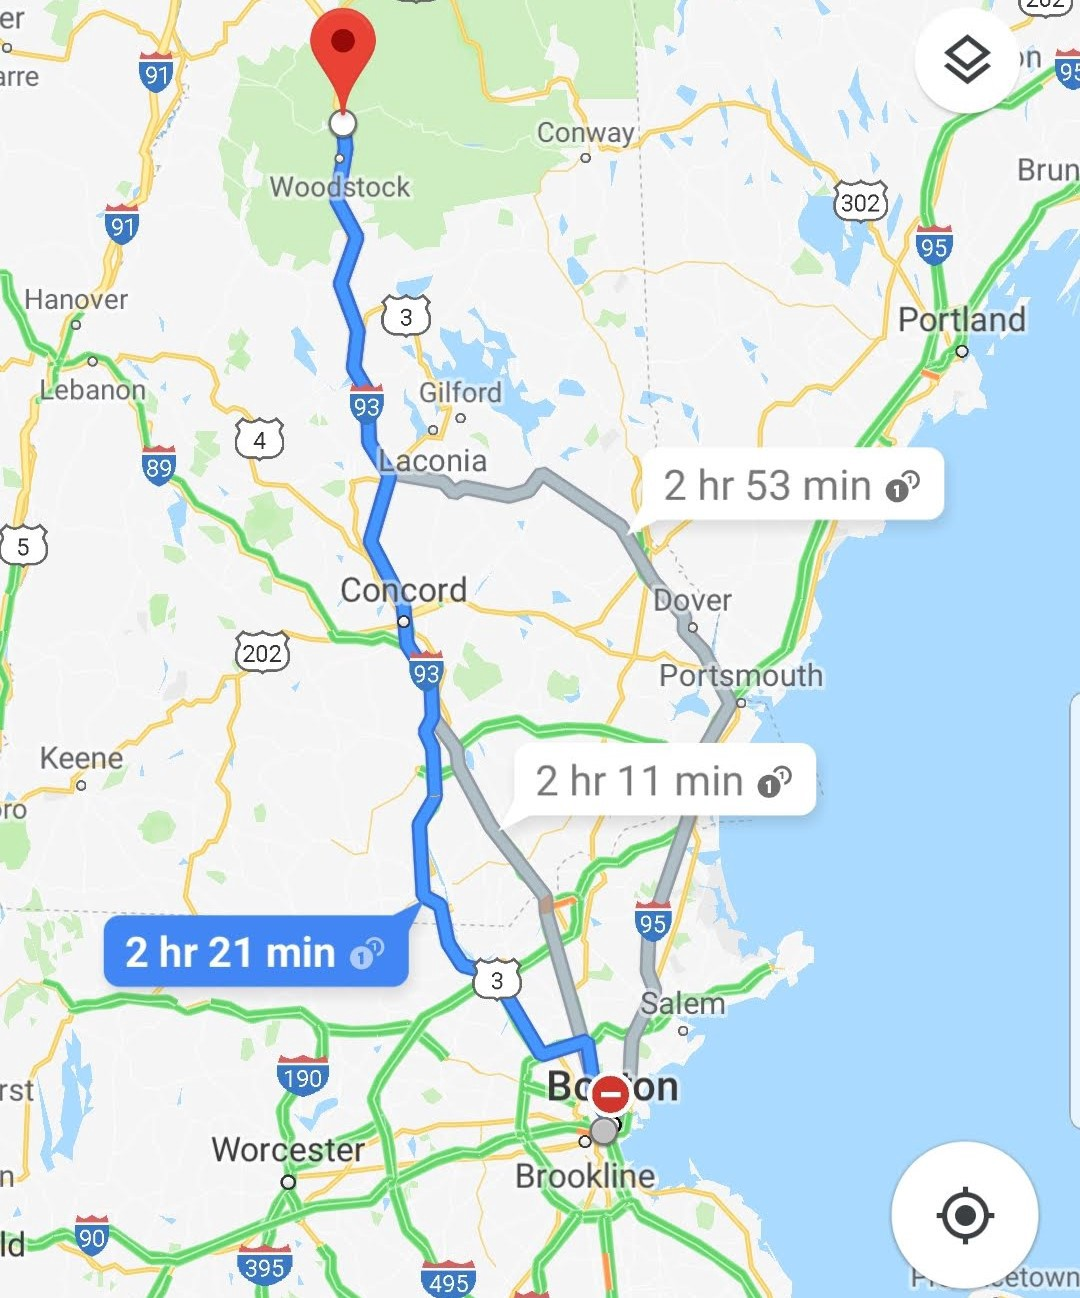 Everyday UI: Google Maps and Toll Roads - Yun Heng - Medium on toll roads in tampa fl, bridge map, pittsburgh on us map, ocala fl map, traffic map, street map, parks map, rail map, garland tx map, toll roads in ca, roman roads map, toll new york, route map, toll roads in south carolina, library map, toll roads in france, ntta toll map, london congestion charge map, richland county sc gis map, toll roads orange county california,